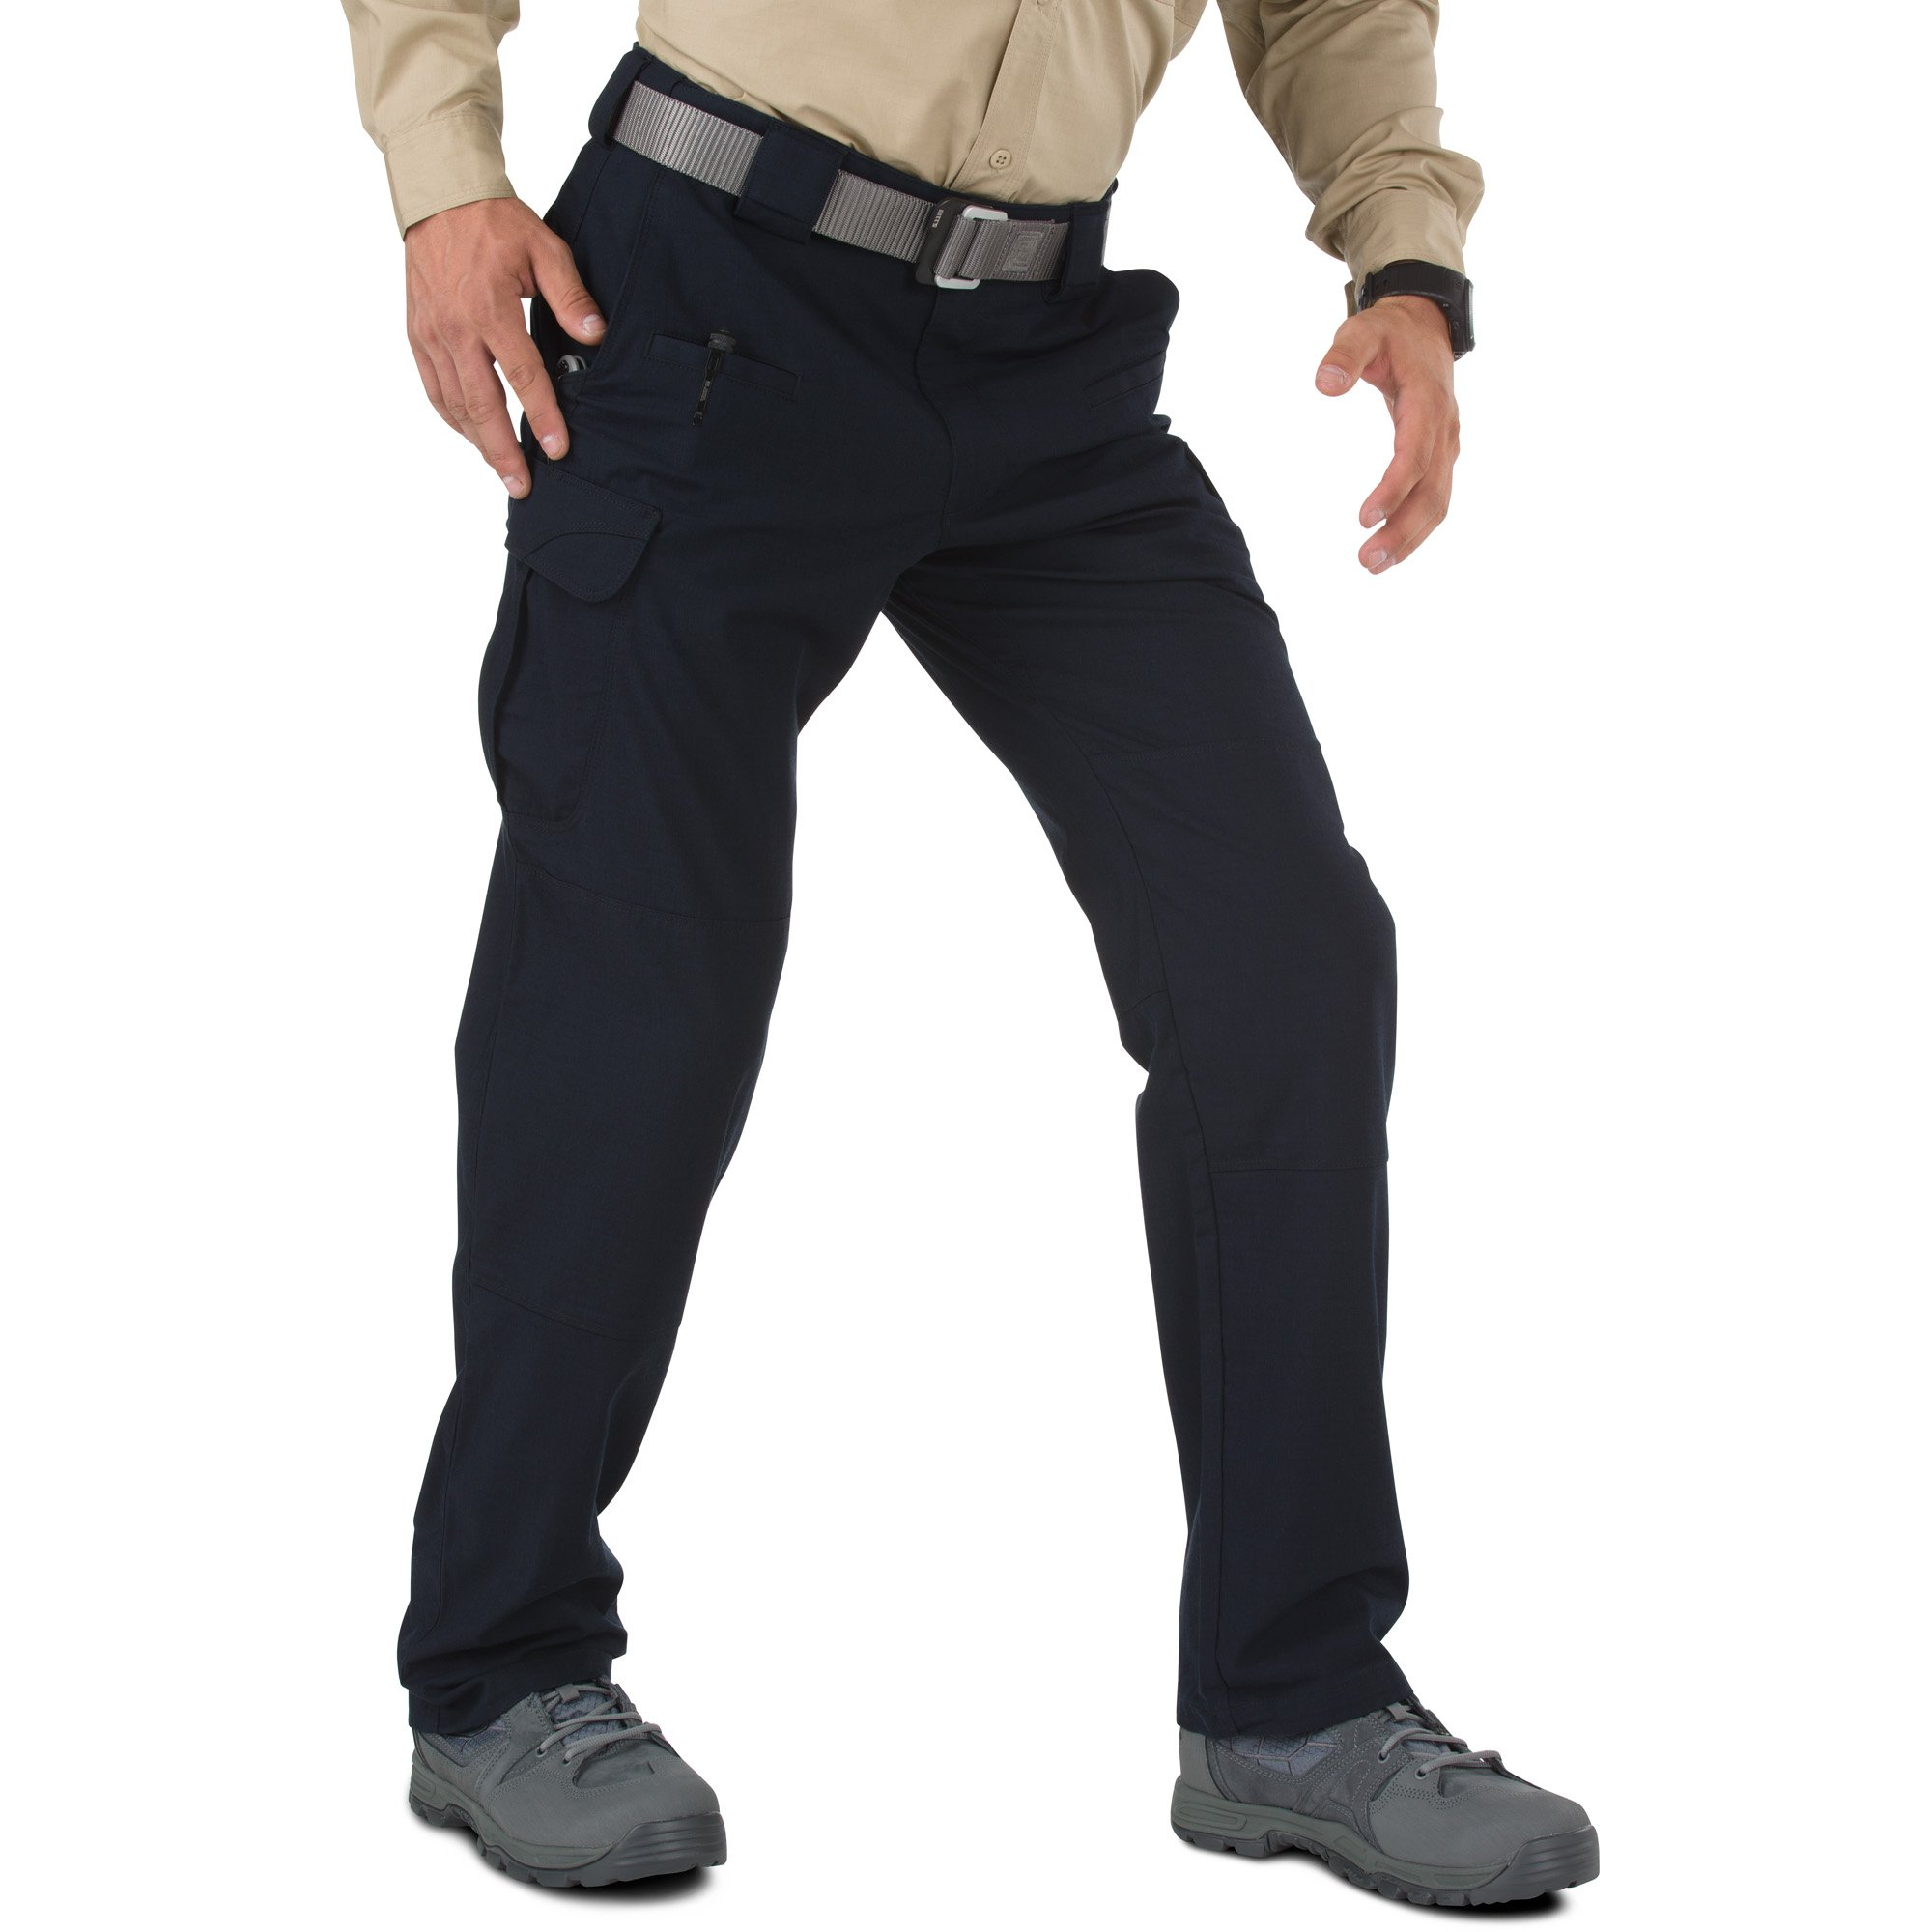 5.11 Tactical Stryke Pant, Dark Navy, 34x32